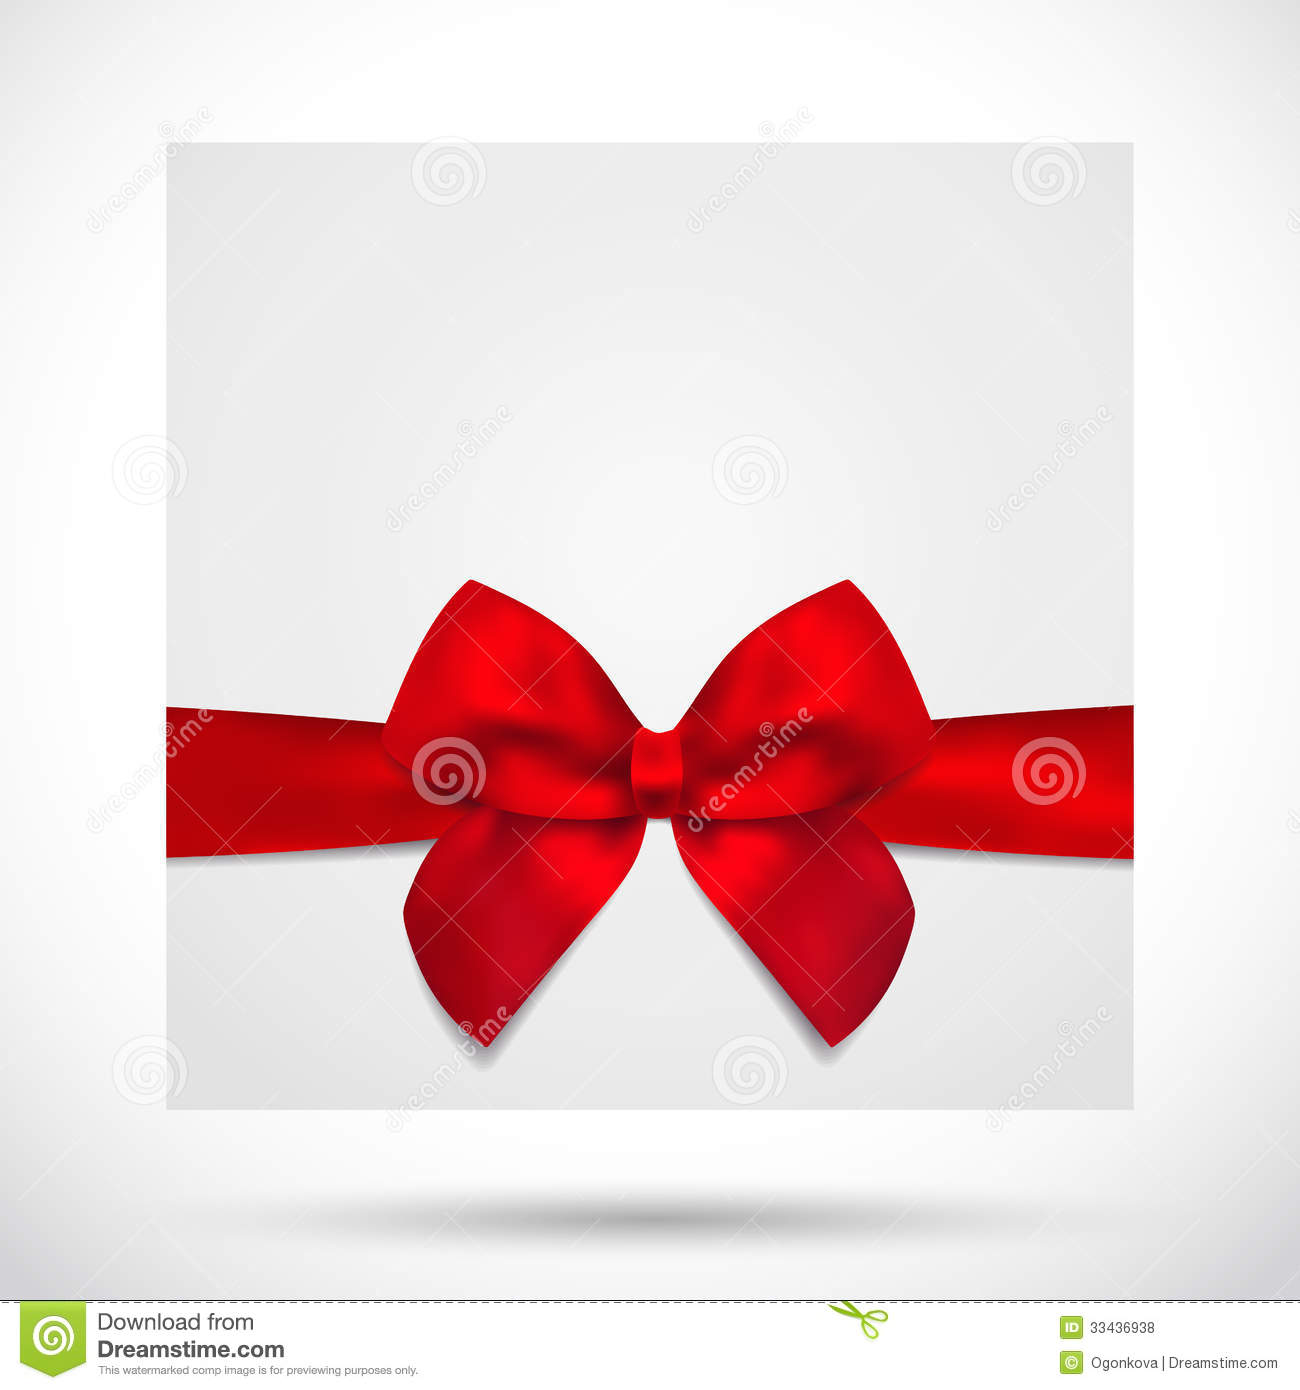 Holiday Card, Christmas / Gift Birthday Card, Bow  Blank Christmas Templates